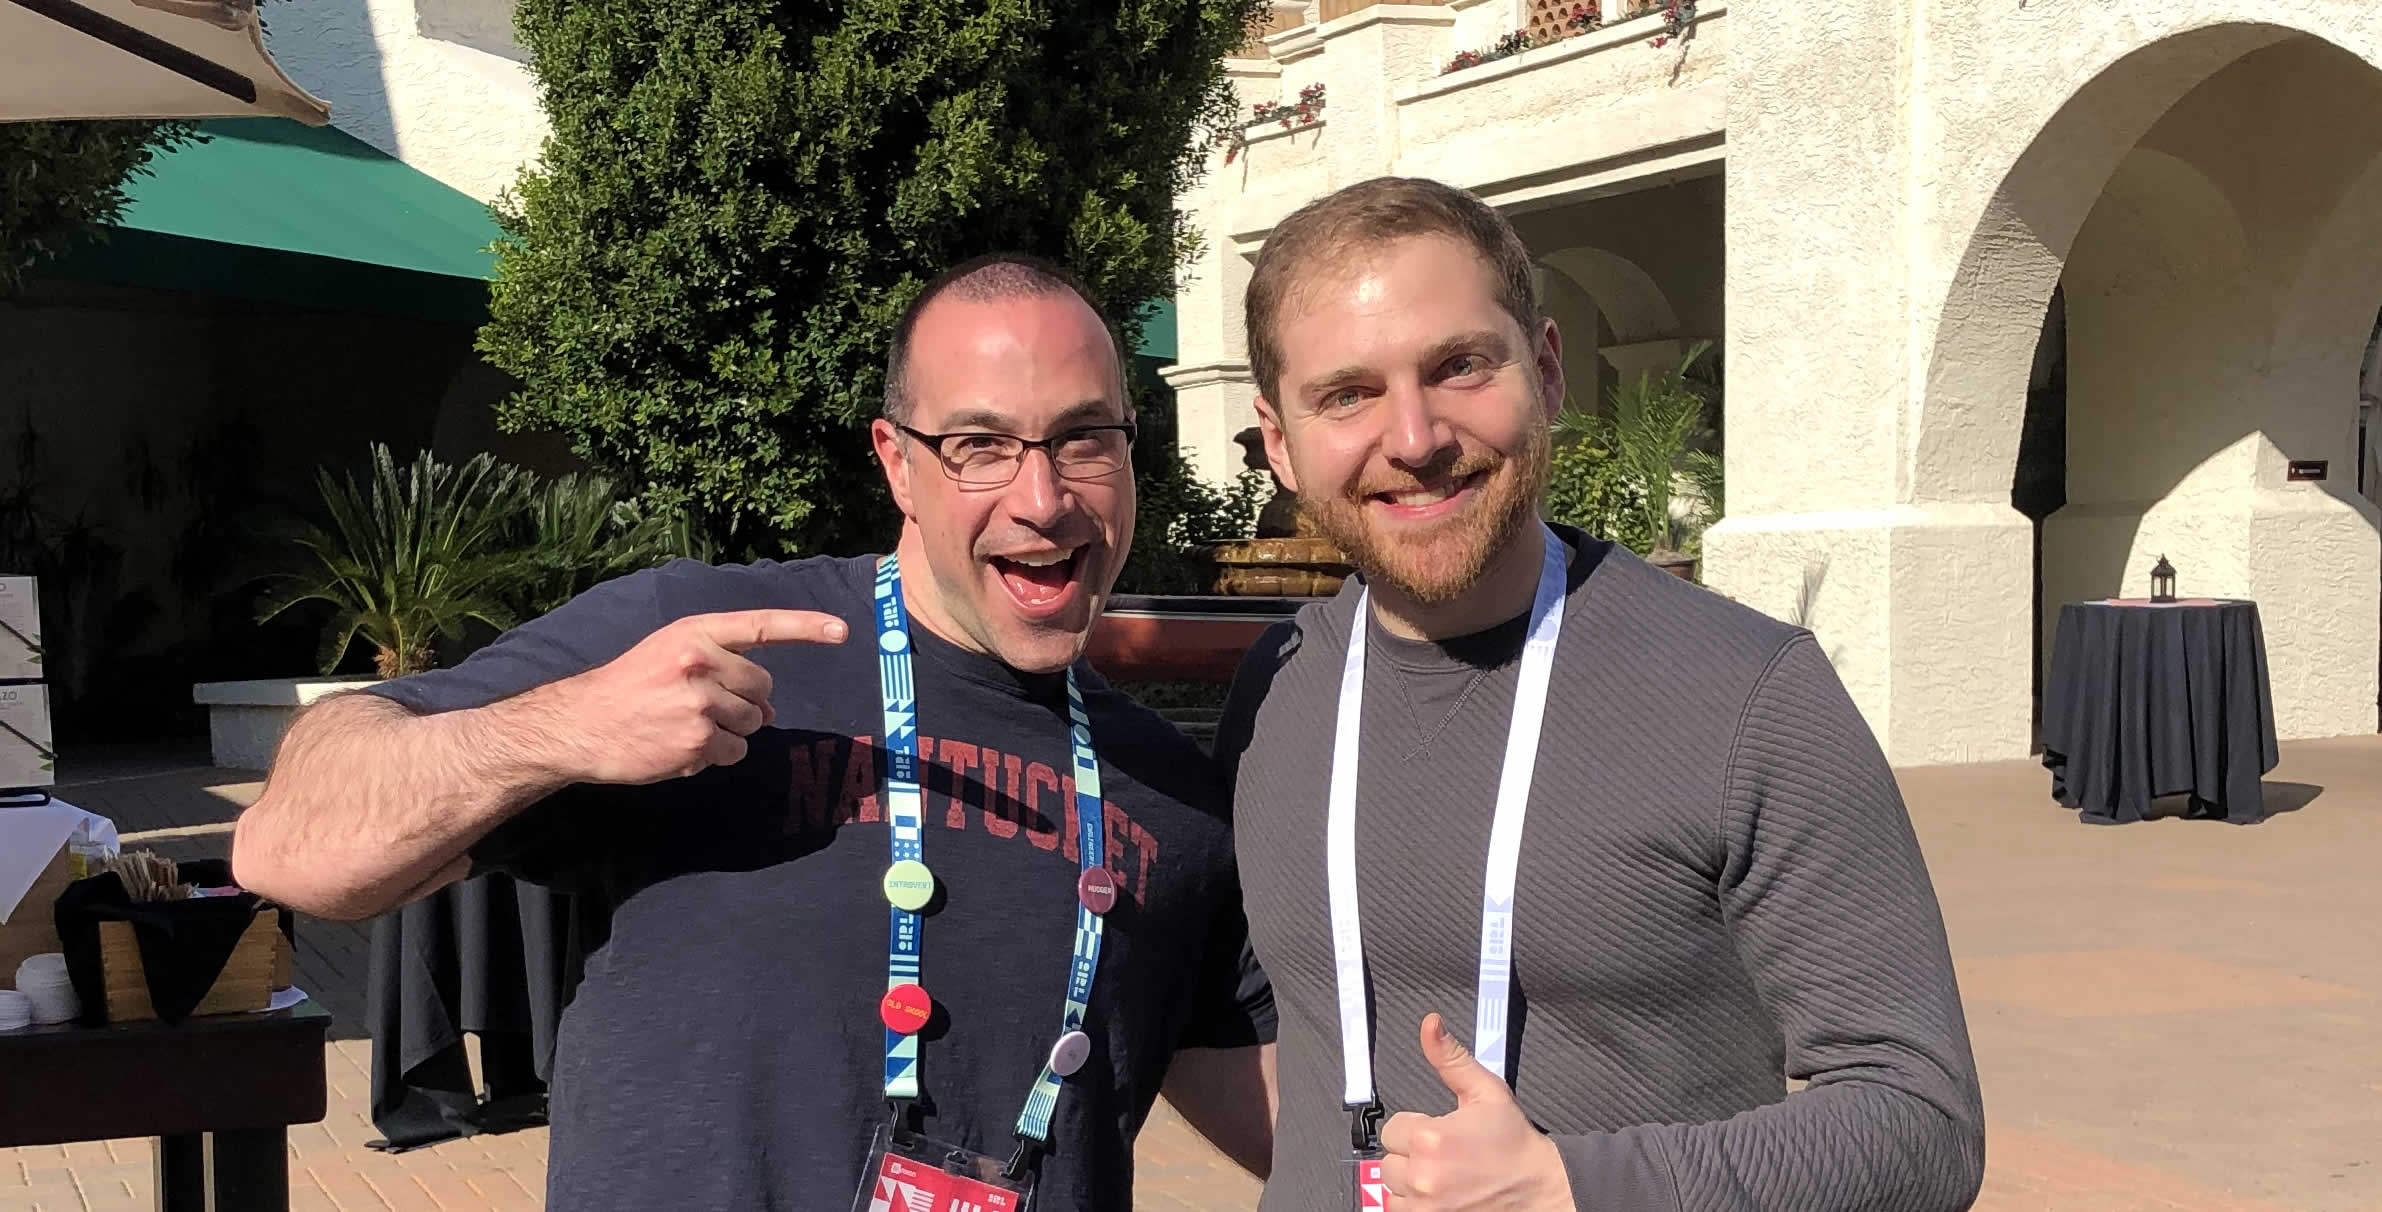 Ben Nadel at InVision In Real Life (IRL) 2019 (Phoenix, AZ) with: David Fraga